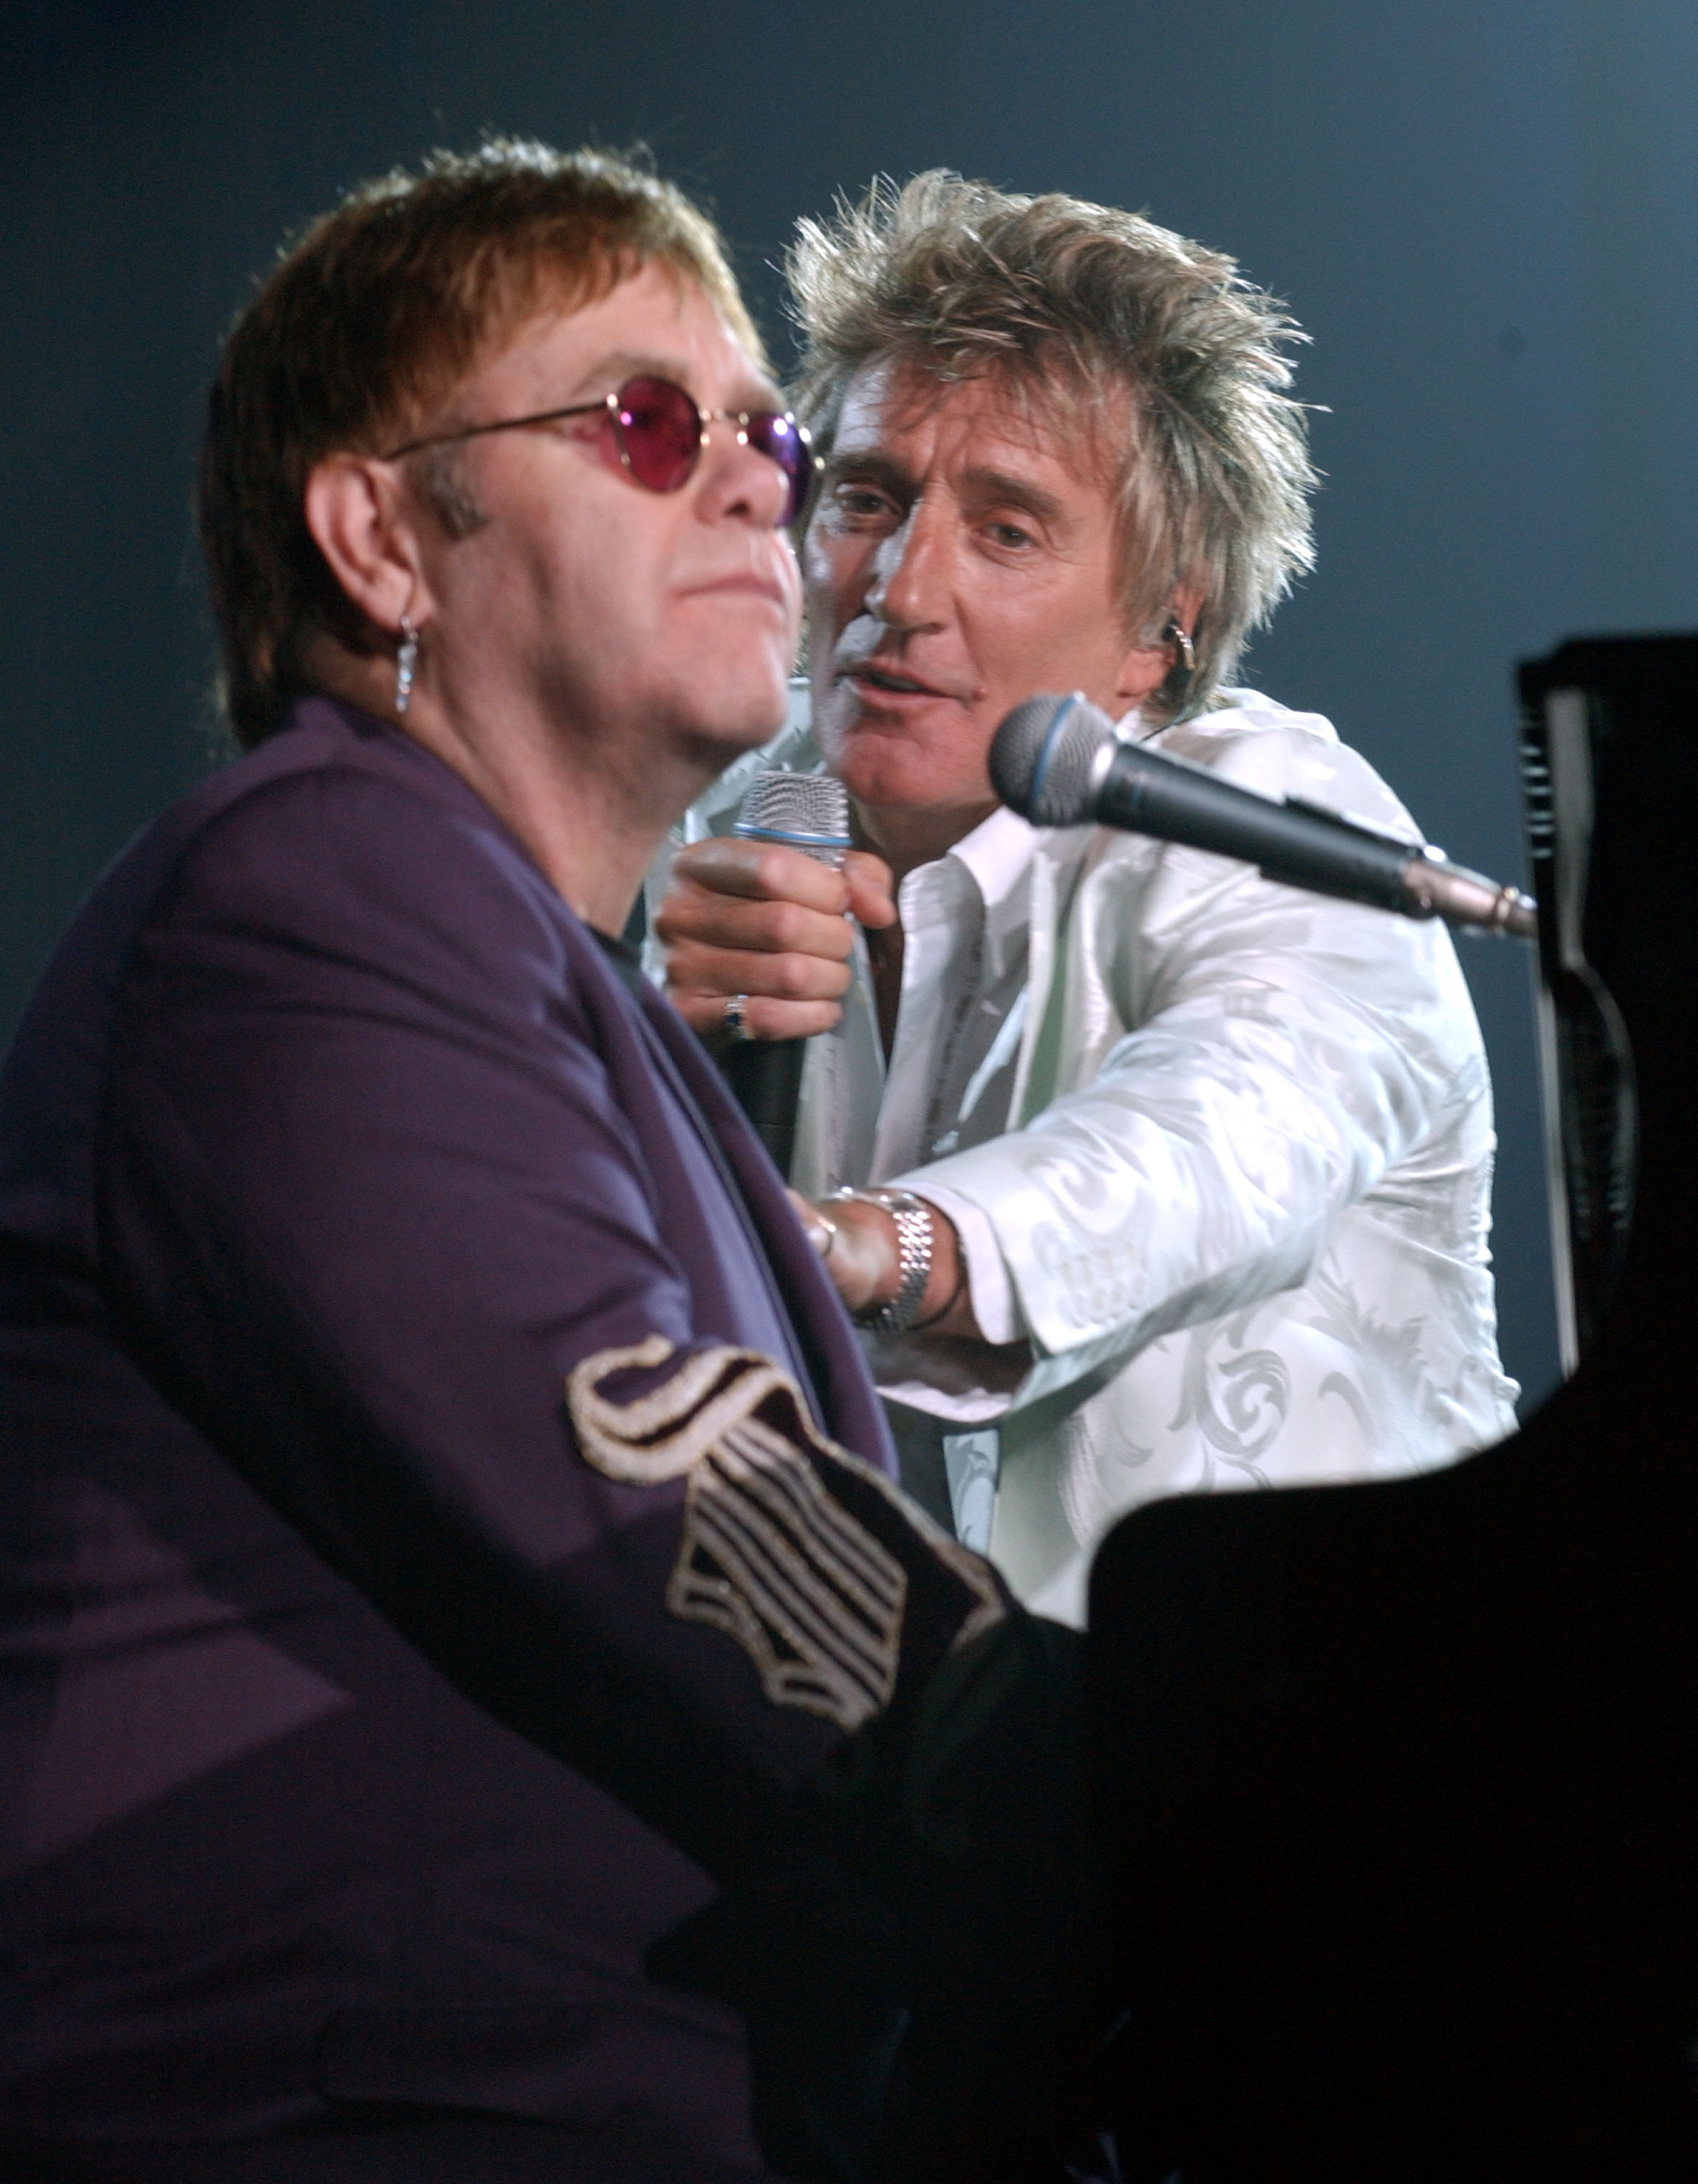 Elton John plans to end his feud with Rod Stewart by sending him a Christmas card